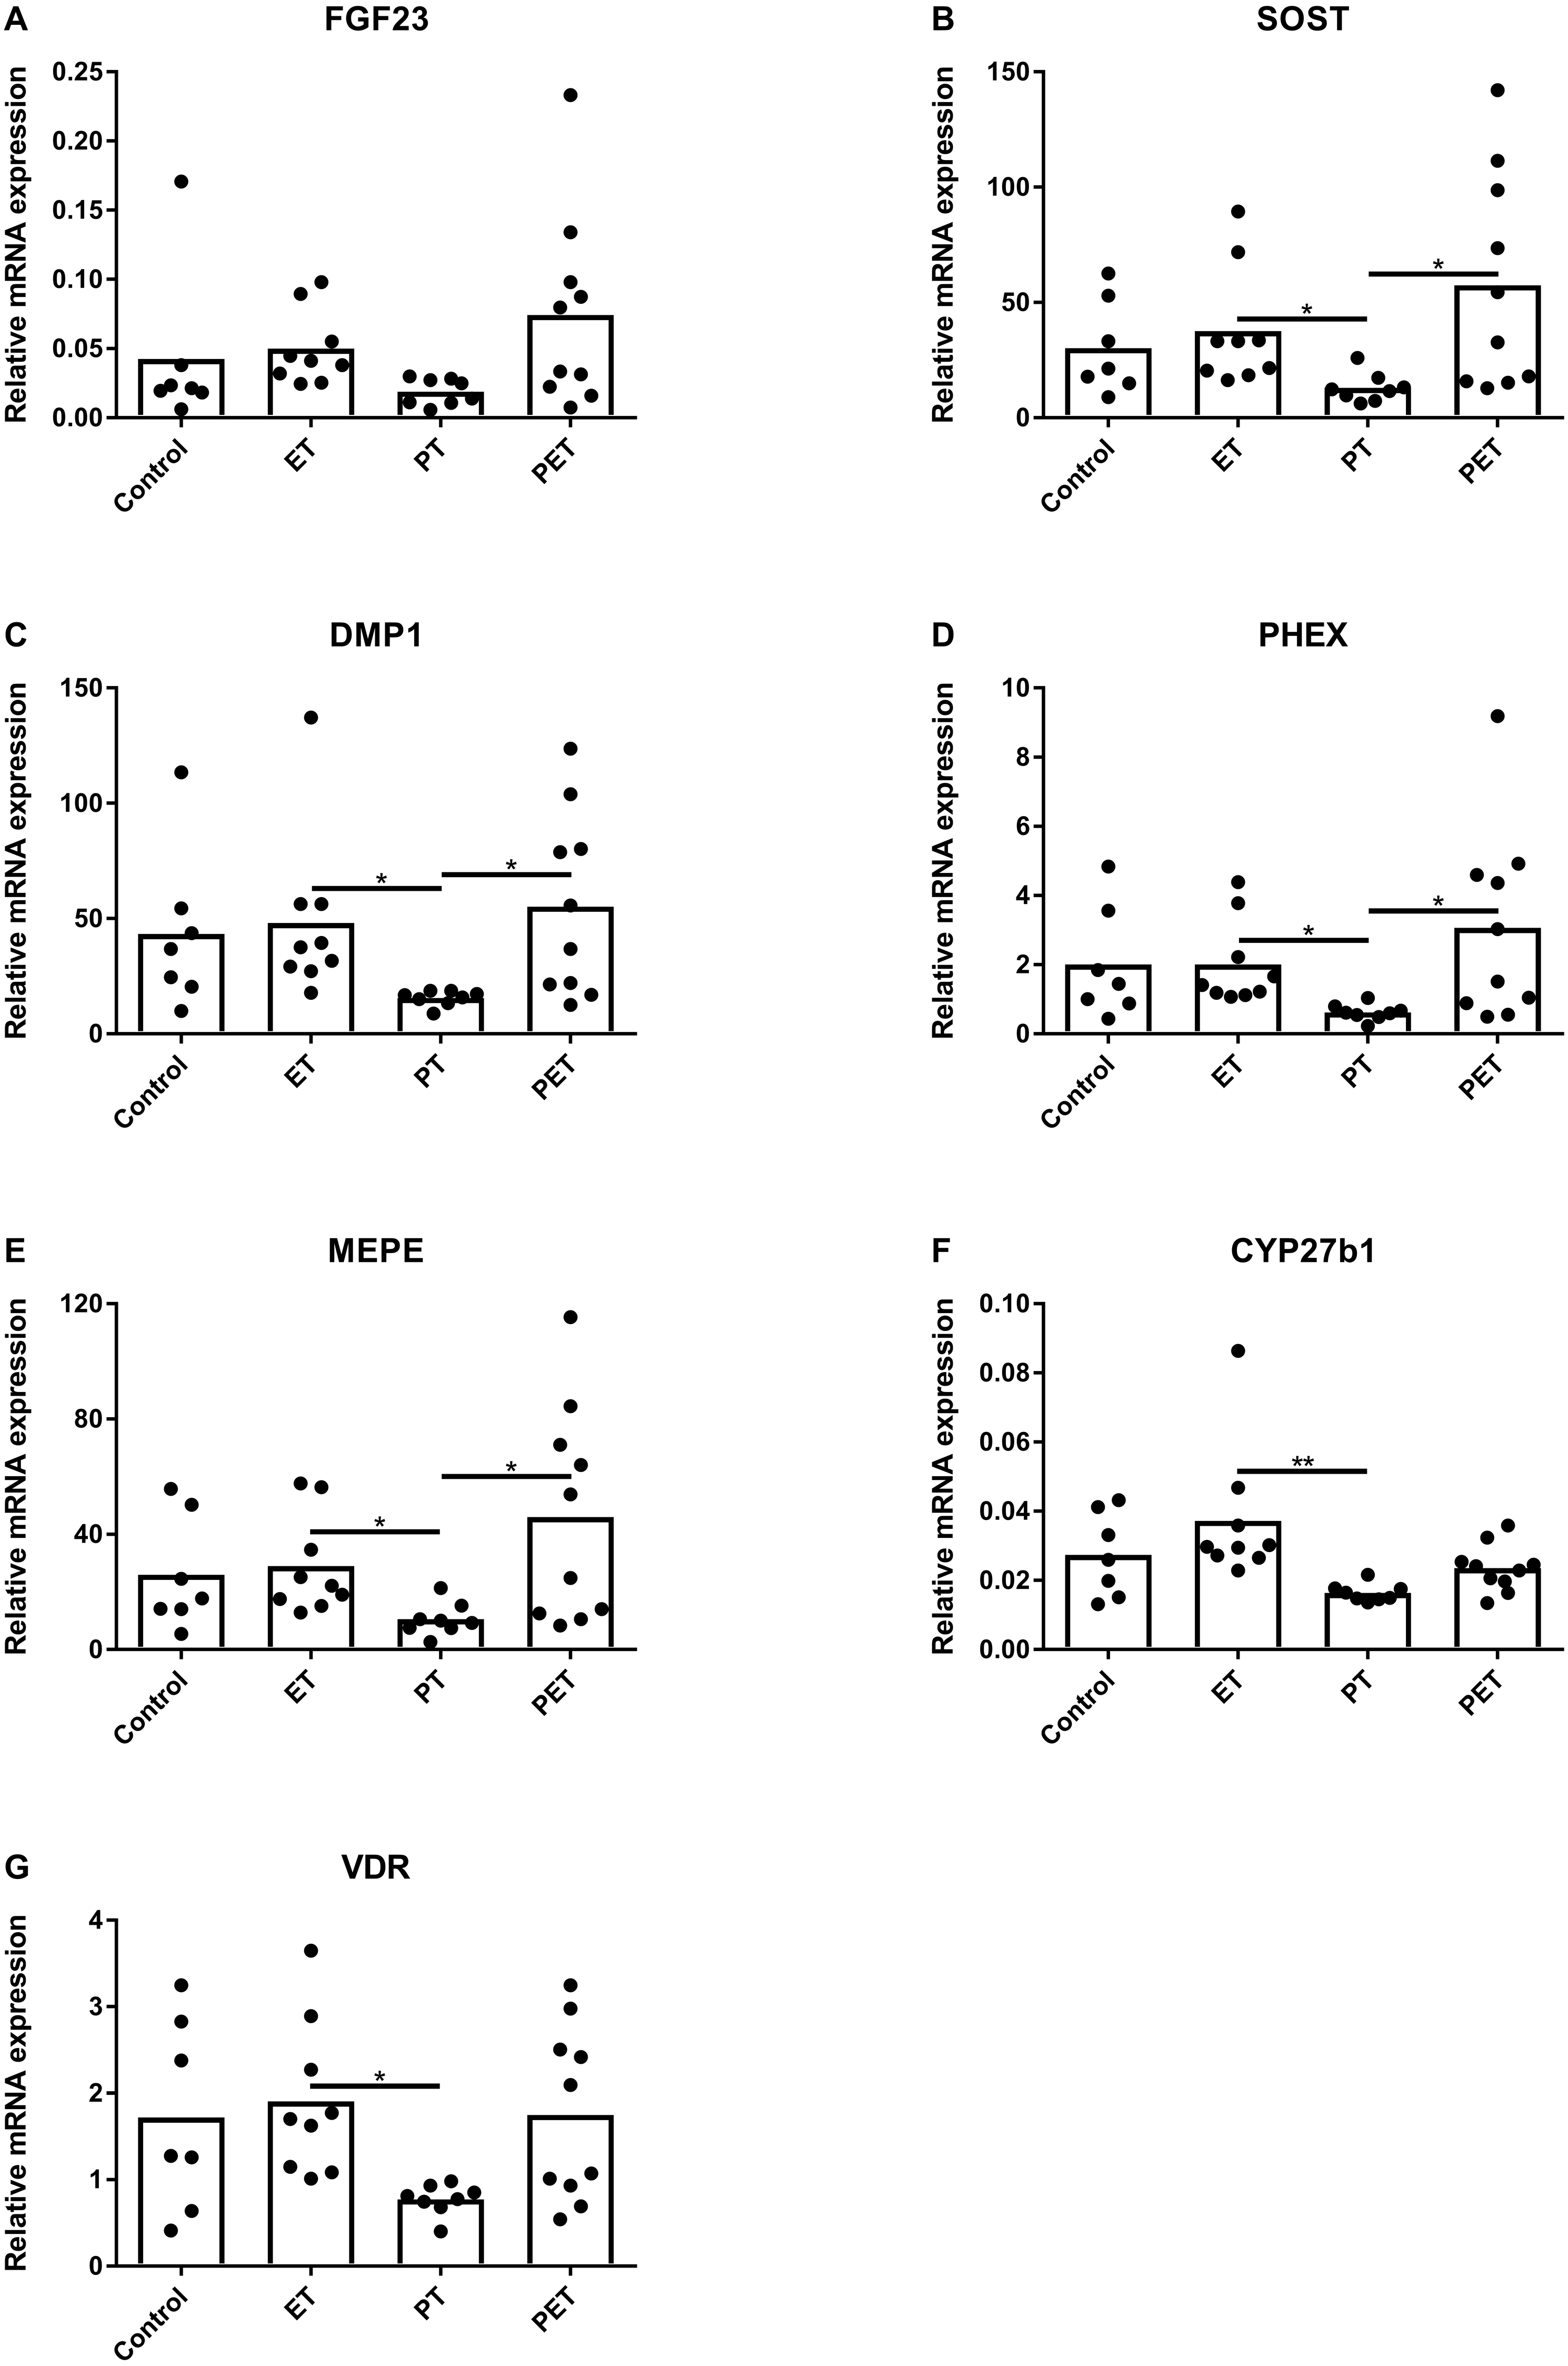 Effects of different training modalities on phosphate